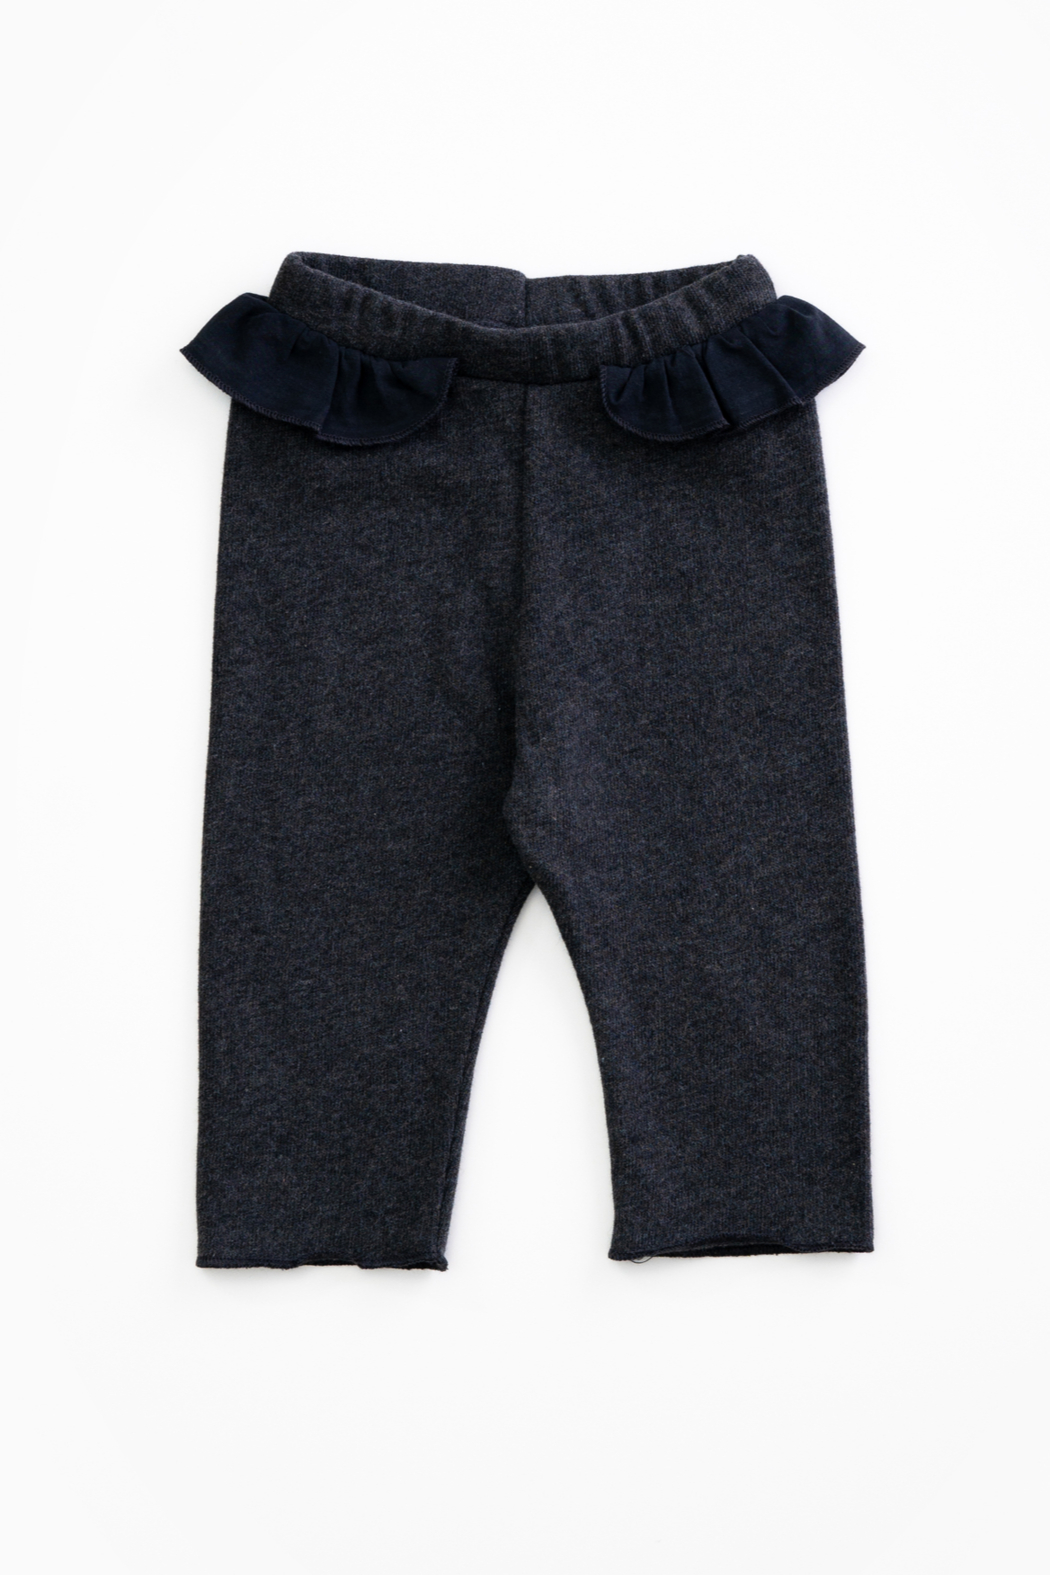 Play Up Organic Cotton Jersey Leggings with frill for baby girls - Main Image